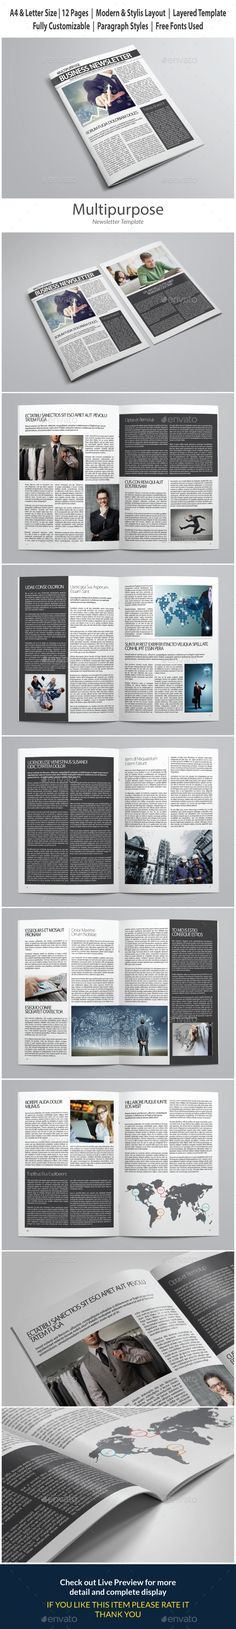 Indesign Newsletter Template vol 1 - Newsletters Print Templates Download here : https://graphicriver.net/item/indesign-newsletter-template-vol-1/13608109?s_rank=64&ref=Al-fatih